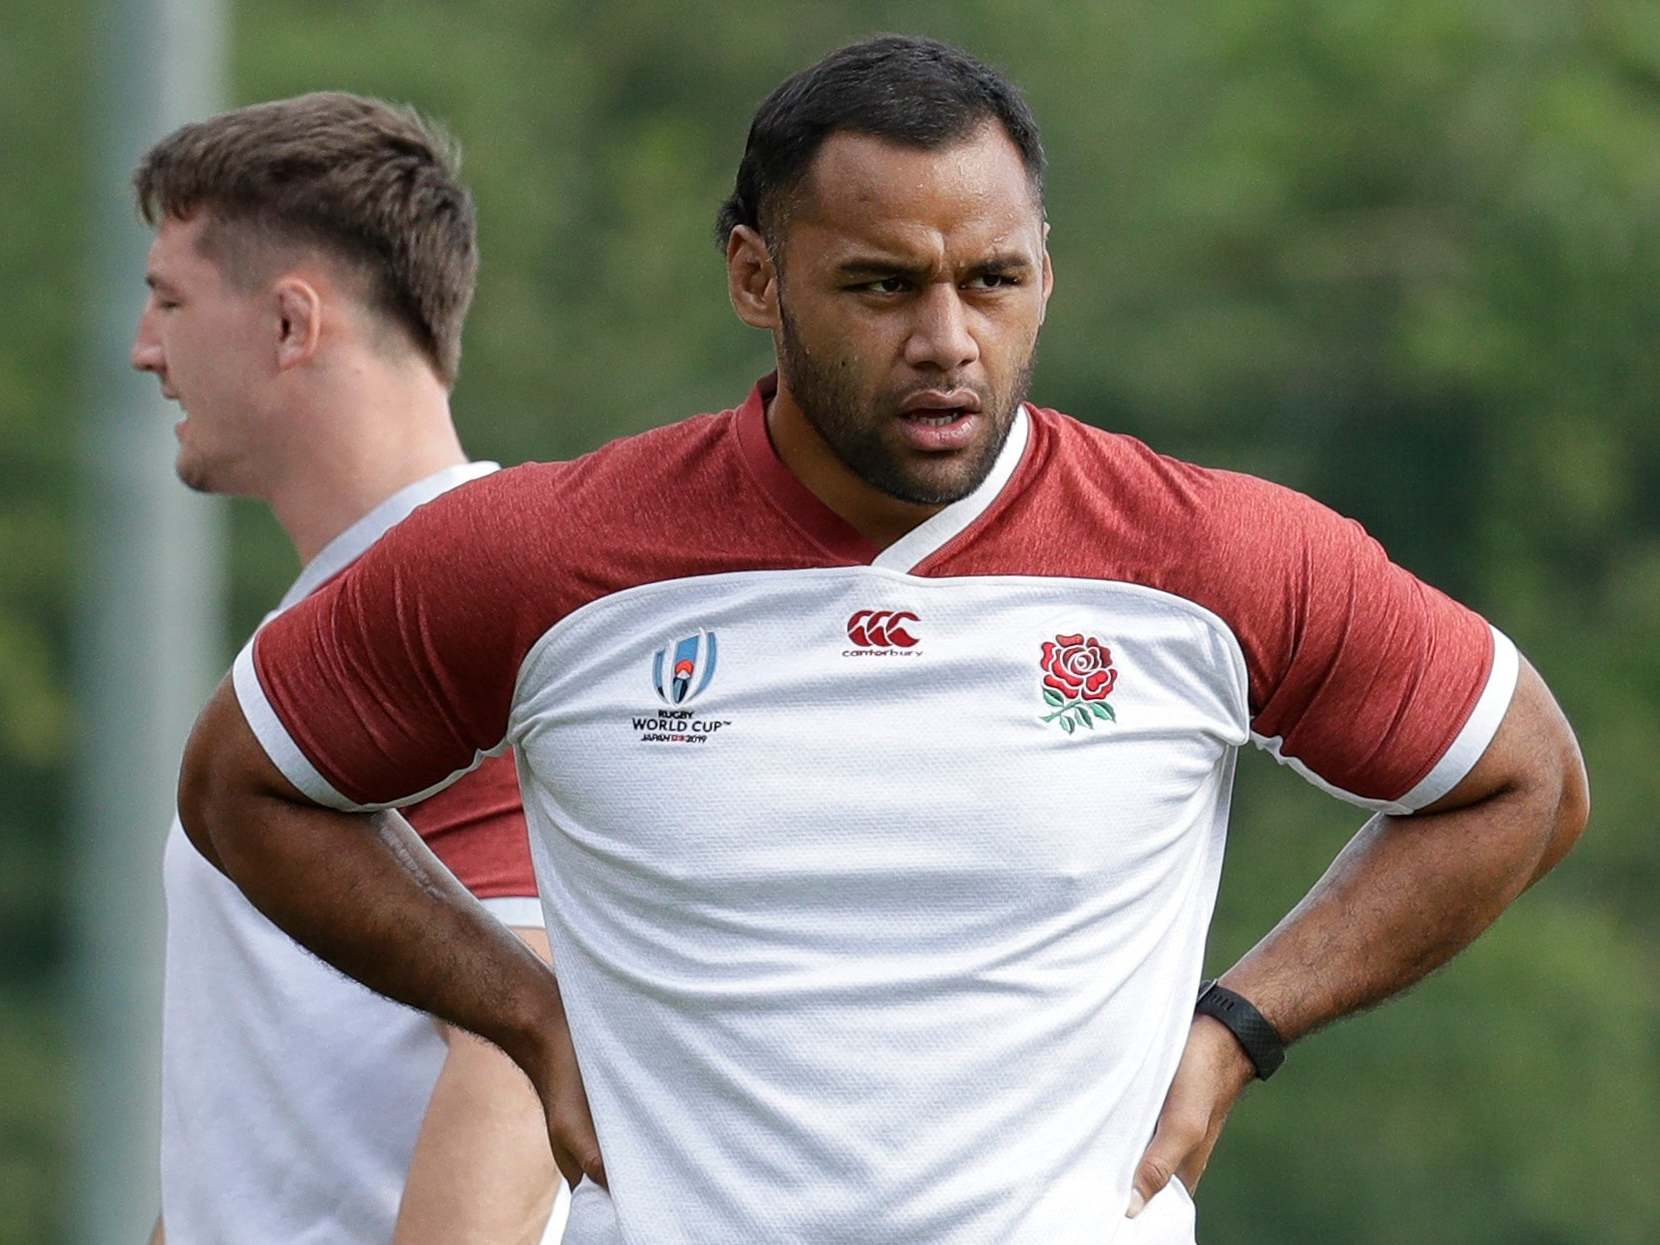 Rugby World Cup 2019: Billy Vunipola 'adapting his game' after opponents worked him out, says John Mitchell